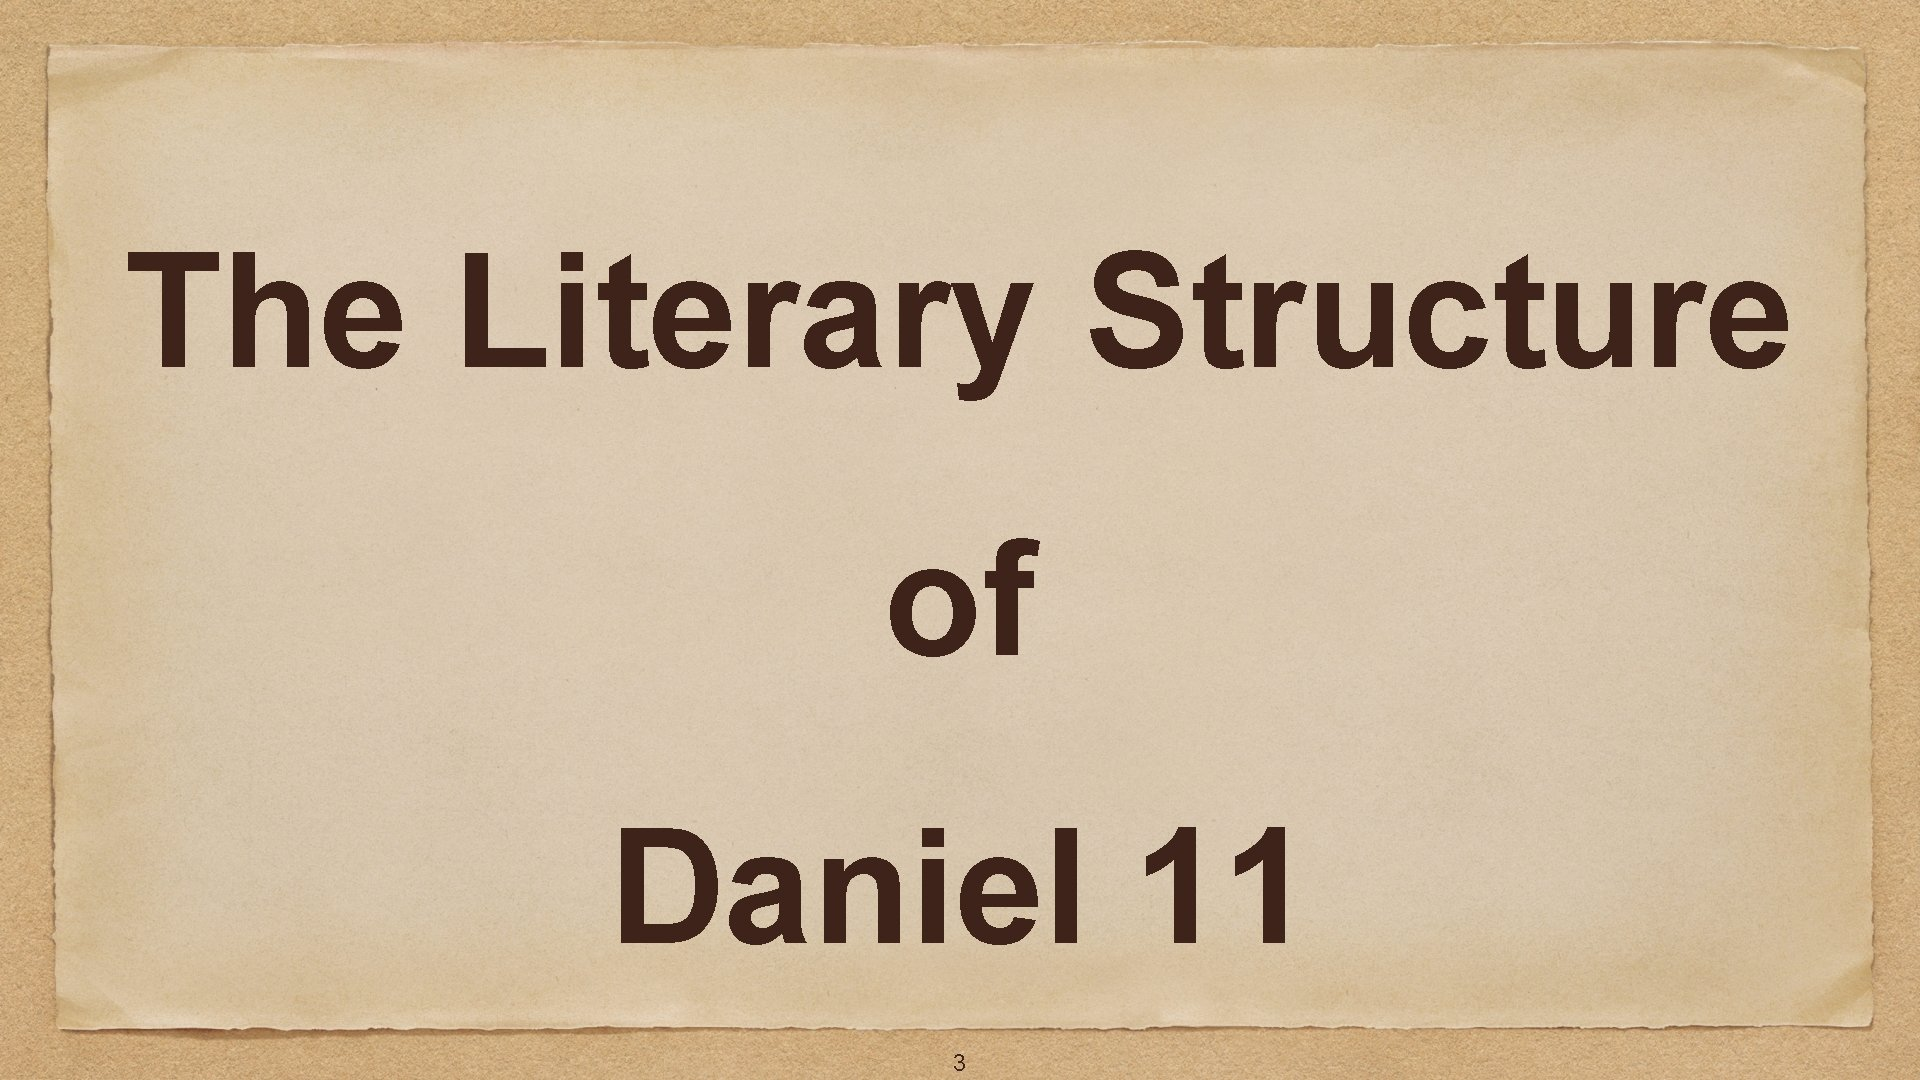 The Literary Structure of Daniel 11 3